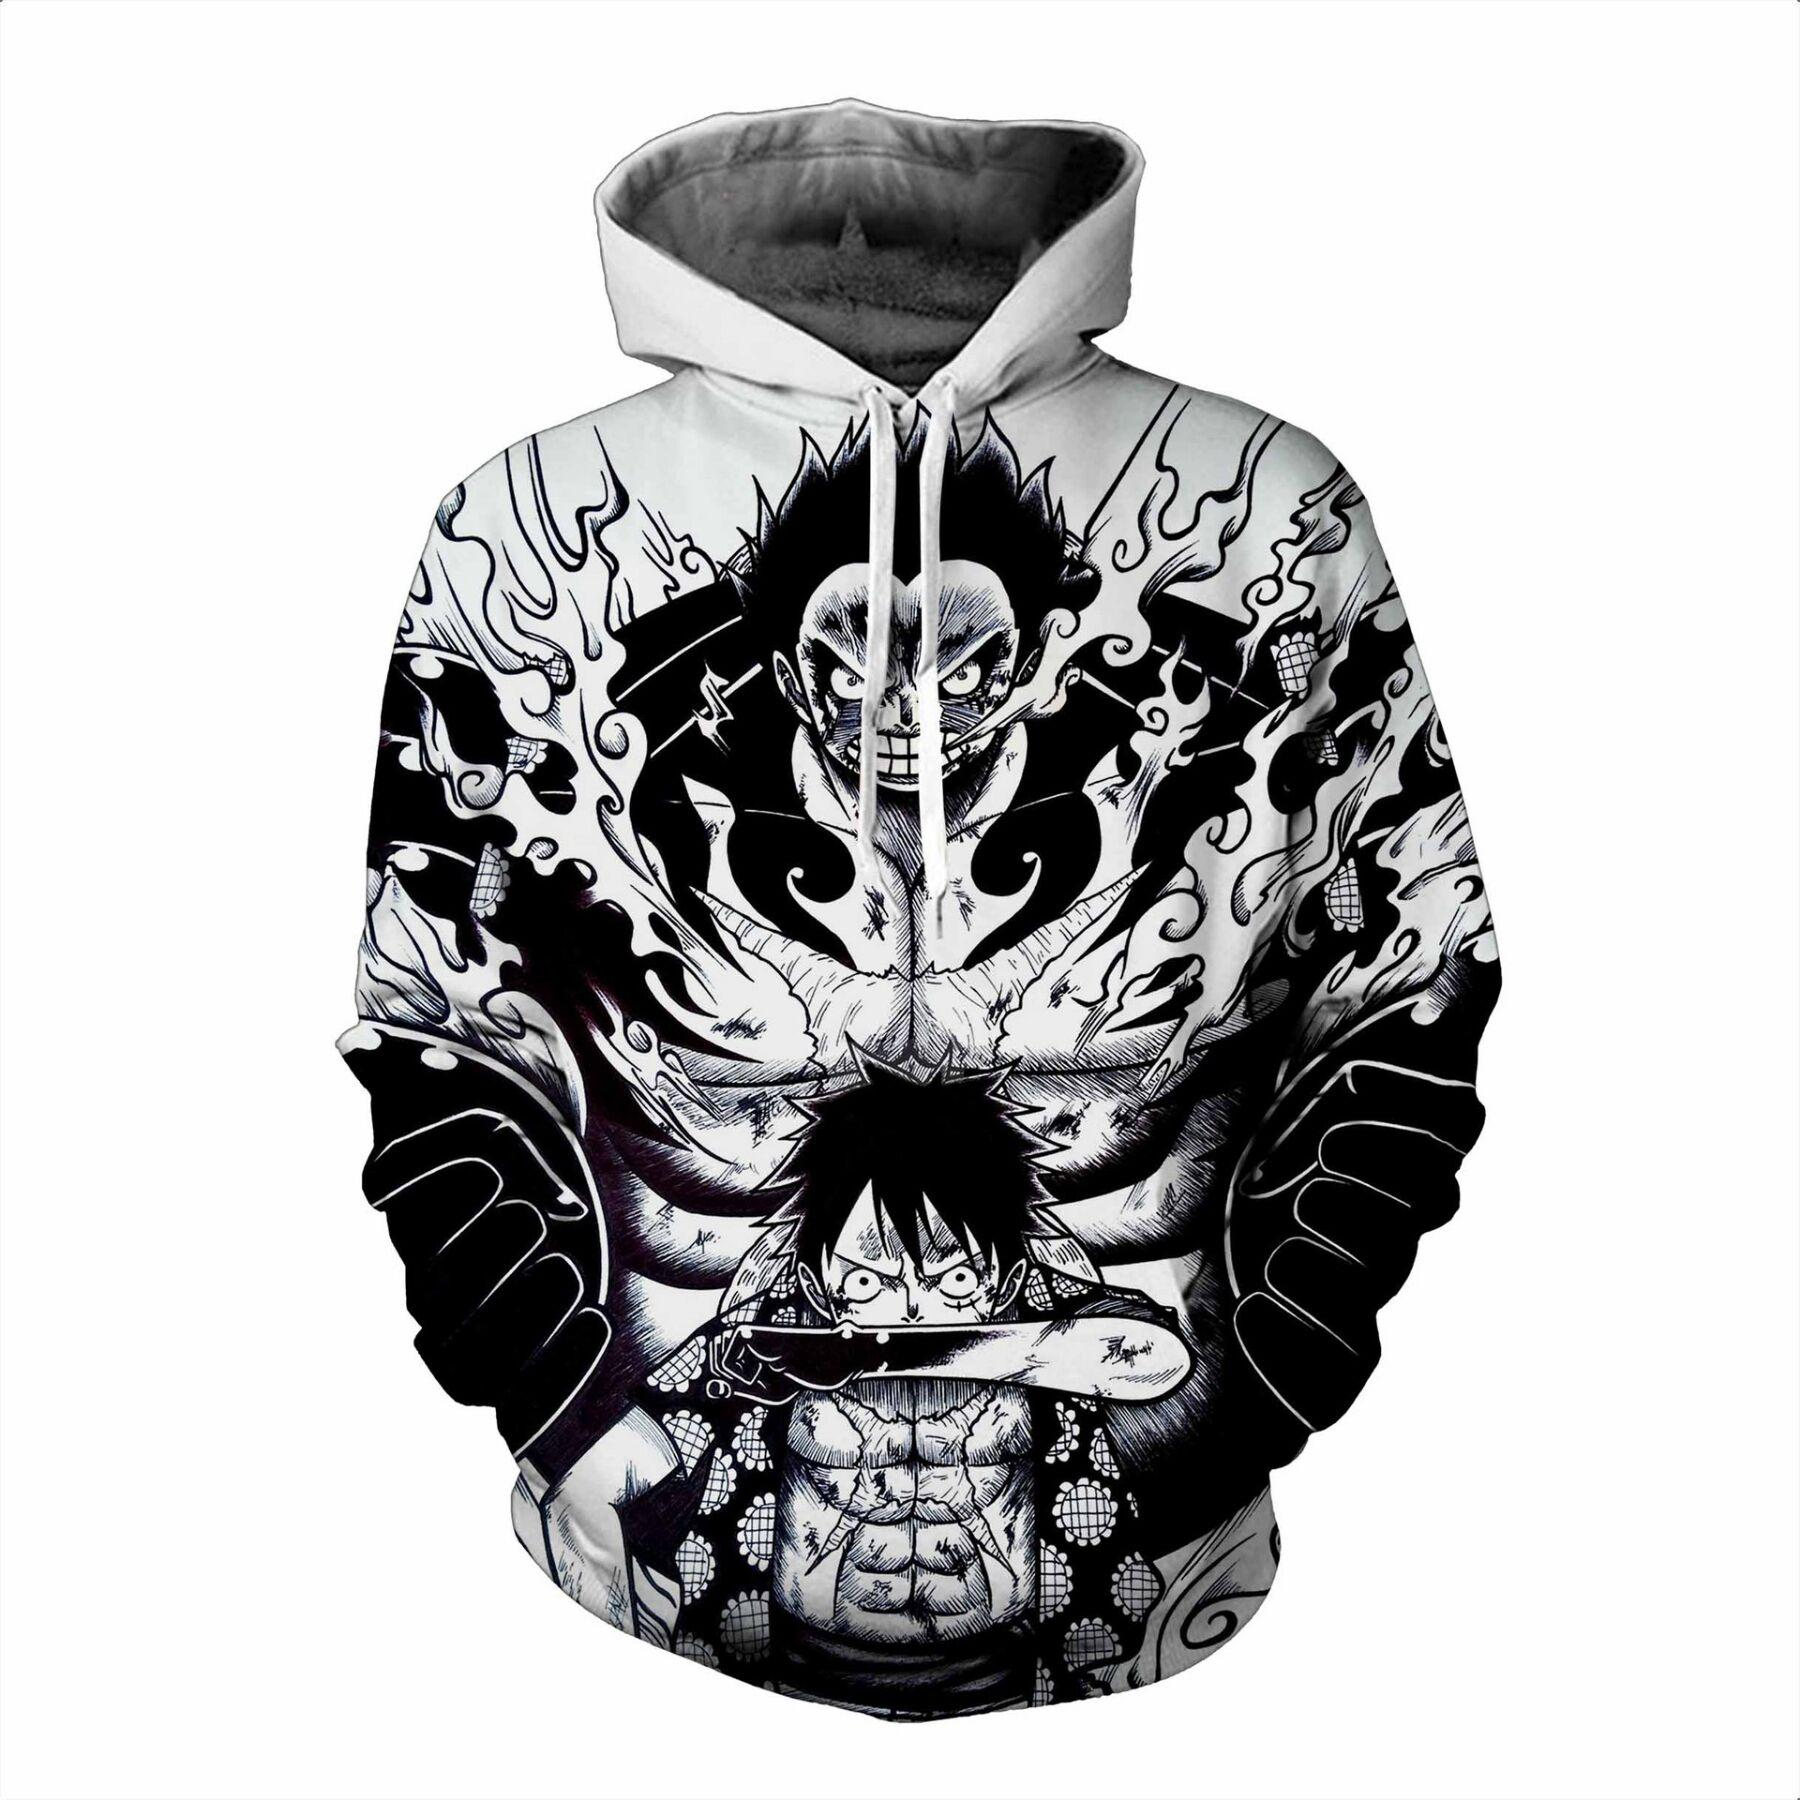 Hoodies & Sweatshirts Anime Hoodies One Piece 3d Printed Hooded Hoodies Sweatshirts For Men Spring Antumn Zipper Monkey D Luffy Jackets Cardigan Tops